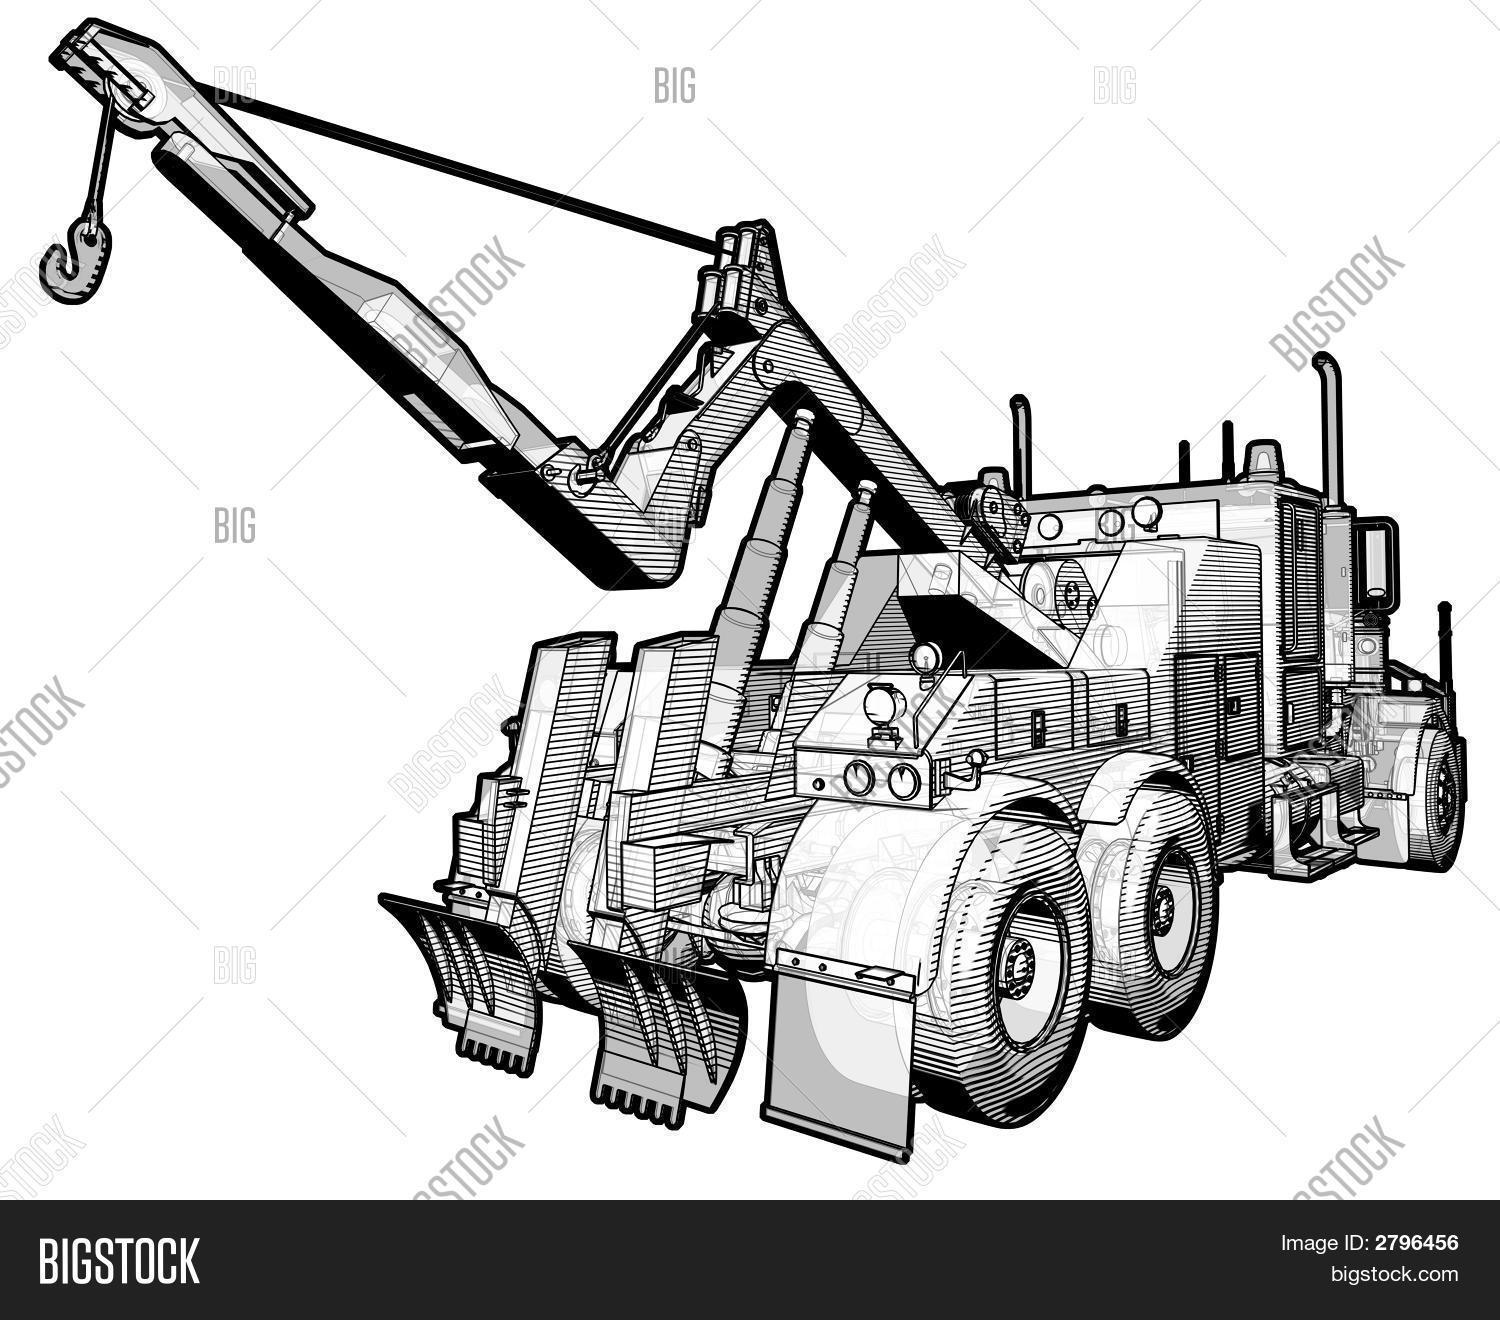 Tow Truck Image Amp Photo Free Trial